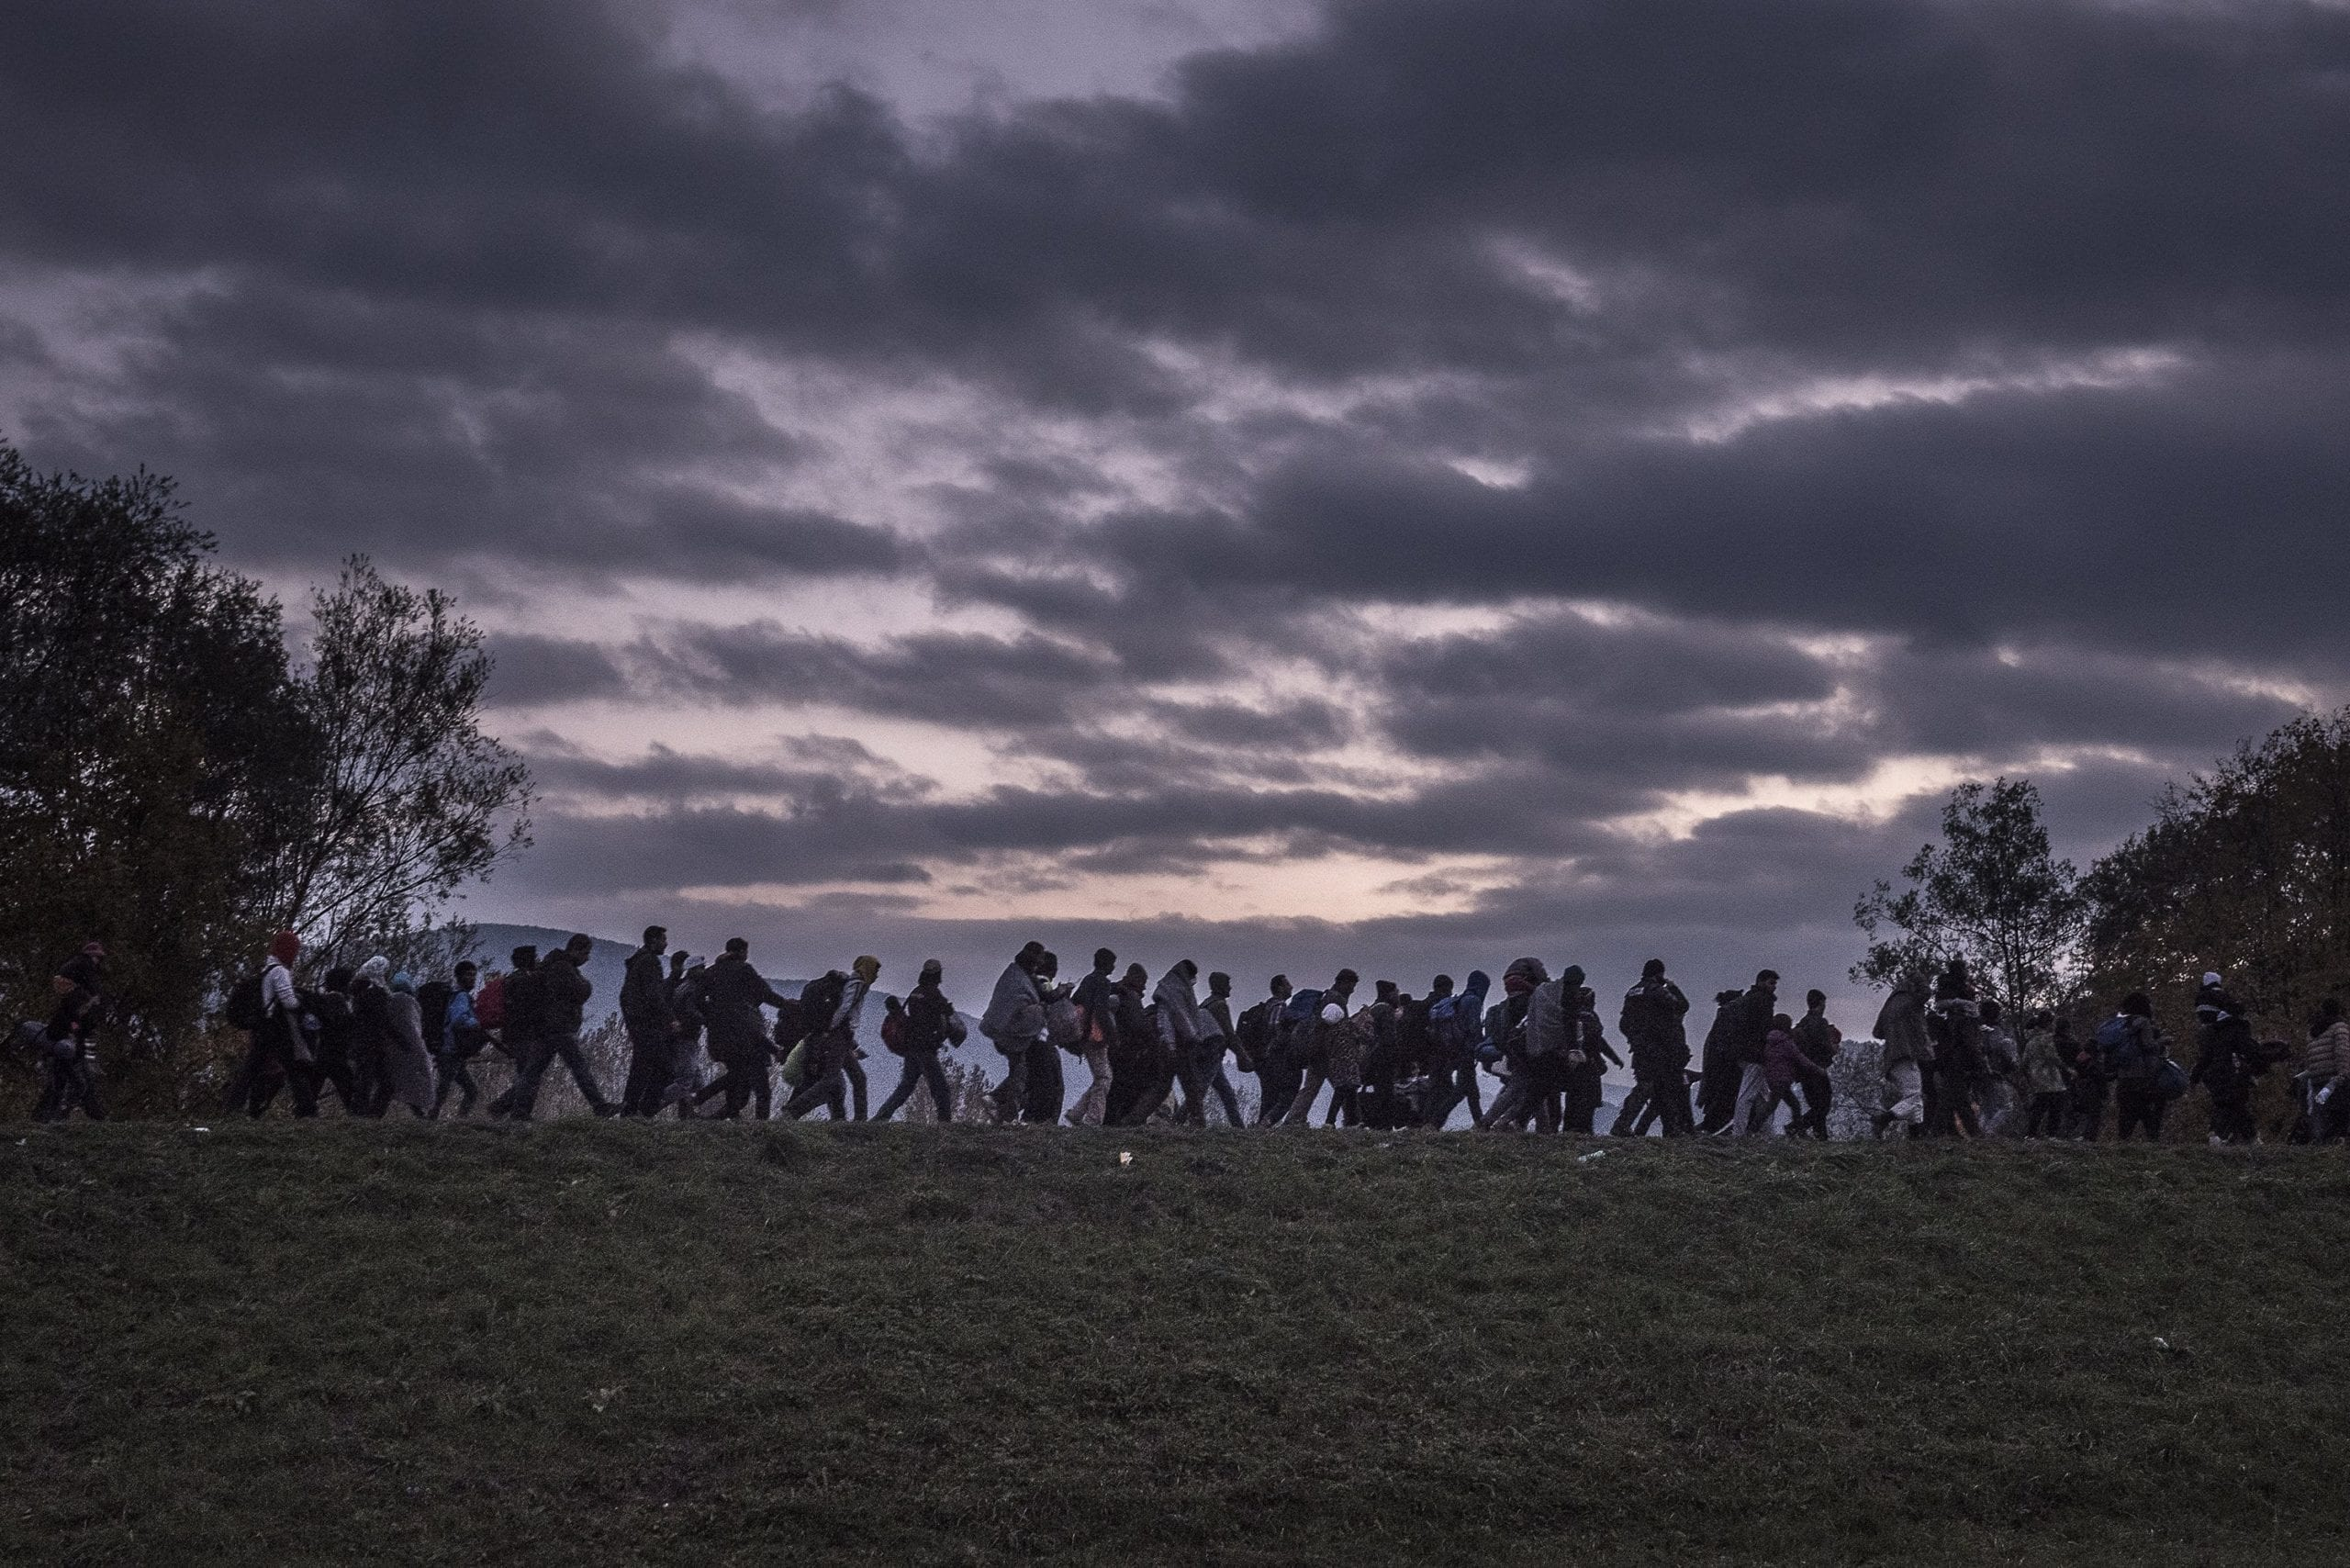 Migrants walked atop a dike as Slovenian riot police escorted them to a registration camp outside Dobova. War, drought and more are driving millions of people from their homelands © Sergey Ponomarev fo